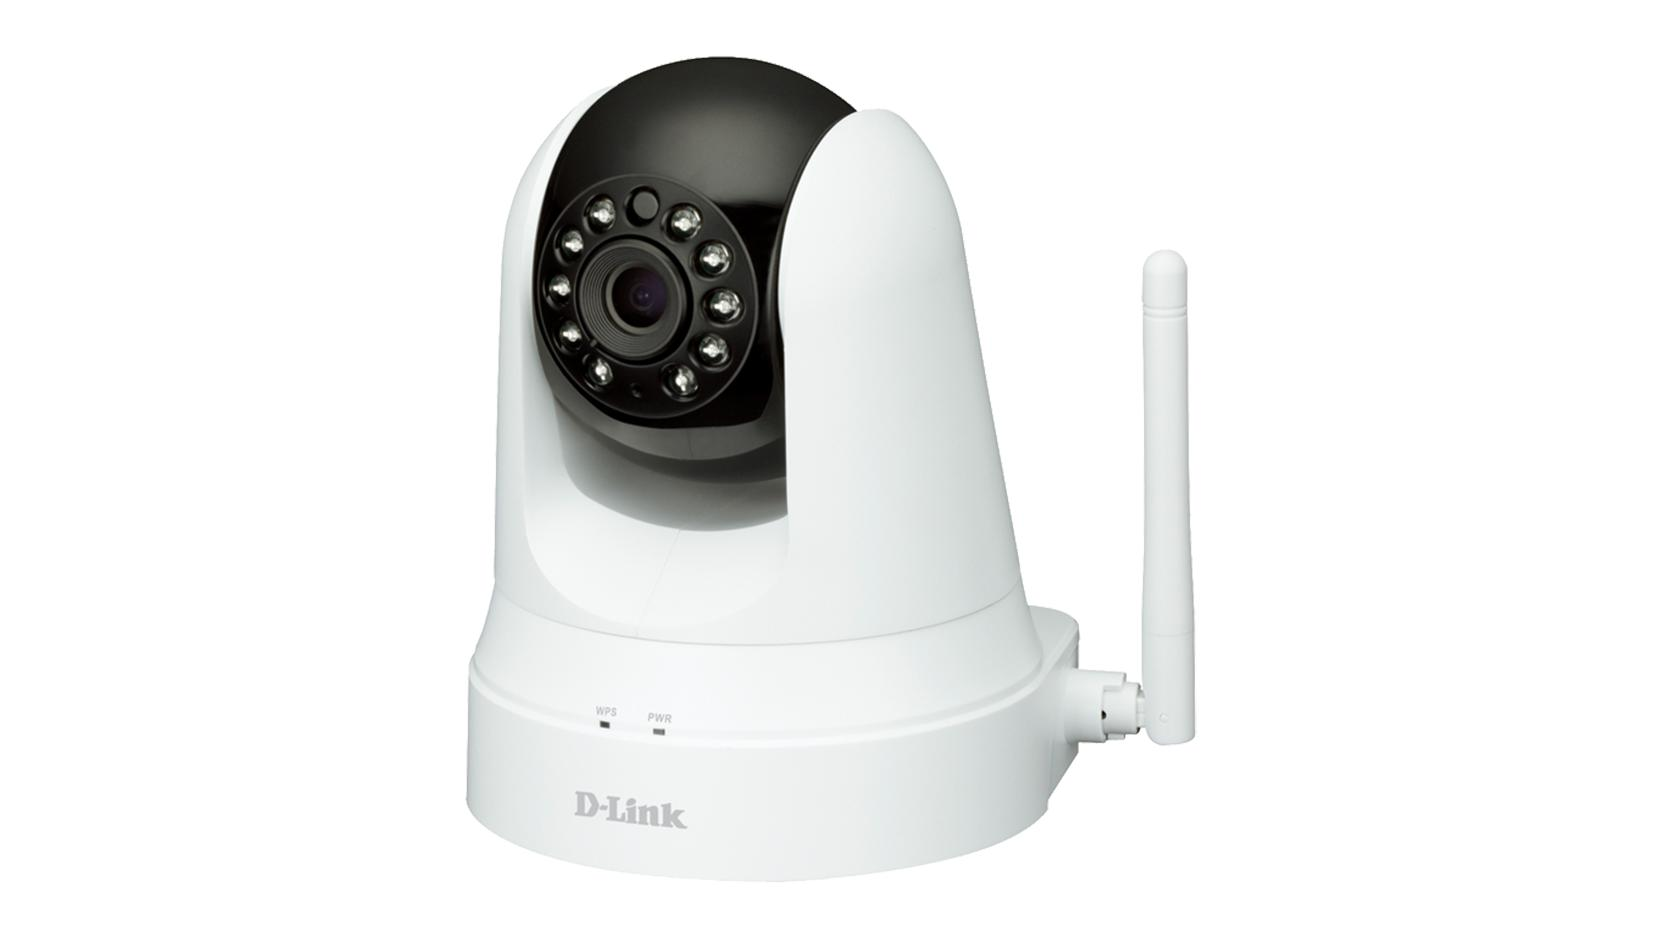 D-LINK WIRELESS N PAN & TILT WITH IR/EXTENDER (DCS-5020L) IP CAMERA